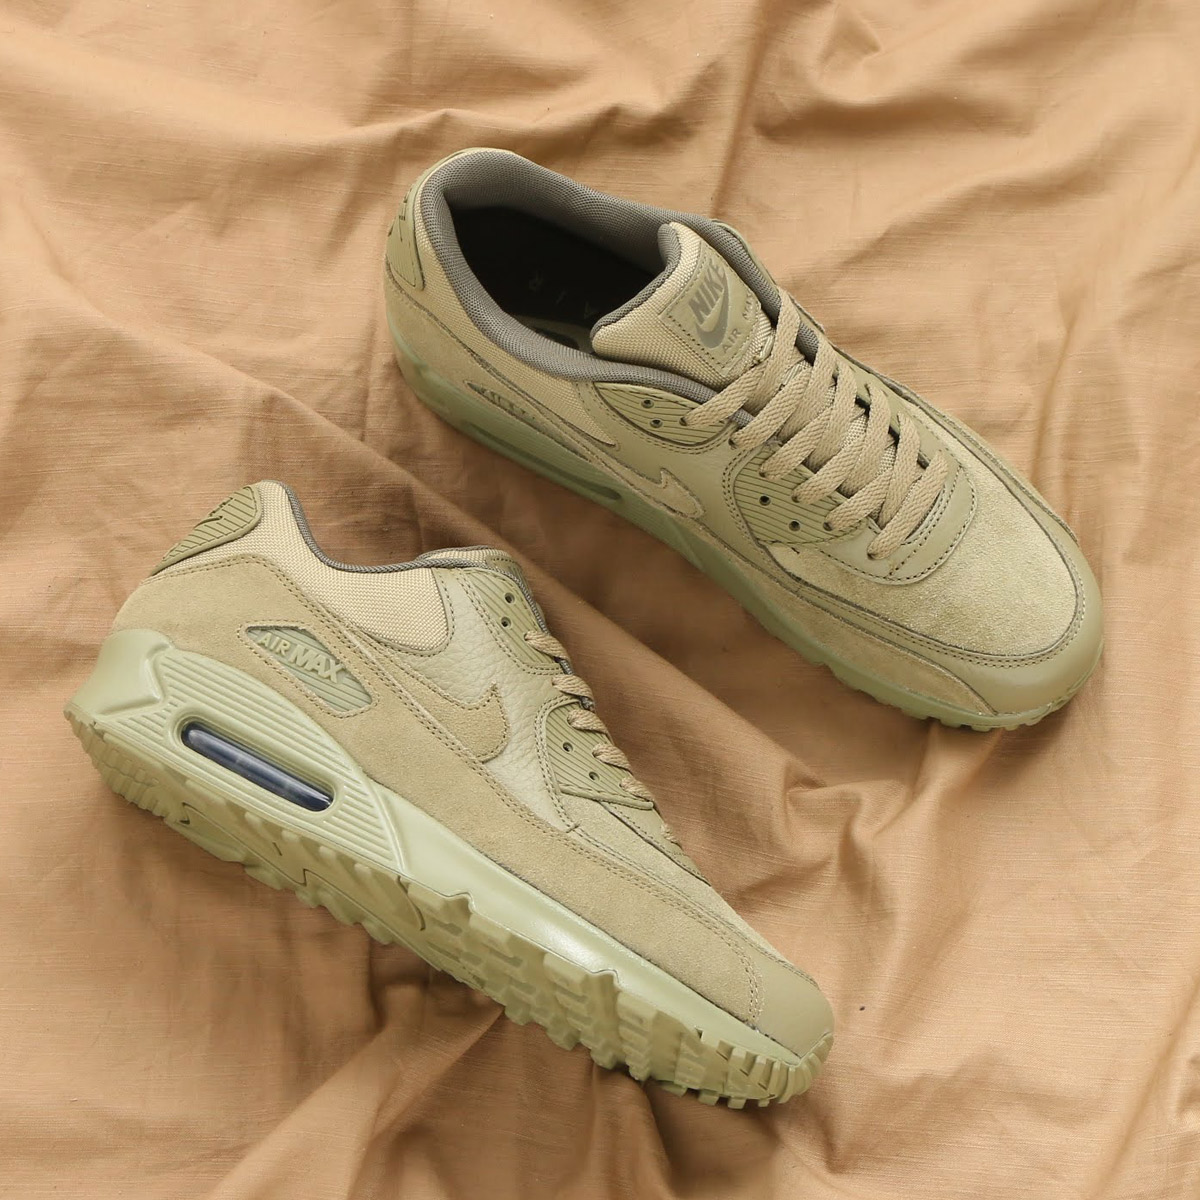 NIKE AIR MAX 90 PREMIUM(ナイキ エア マックス 90 プレミアム)(NEUTRAL OLIVE/NEUTRAL OLIVE-MEDIUM OLIVE)18SP-S